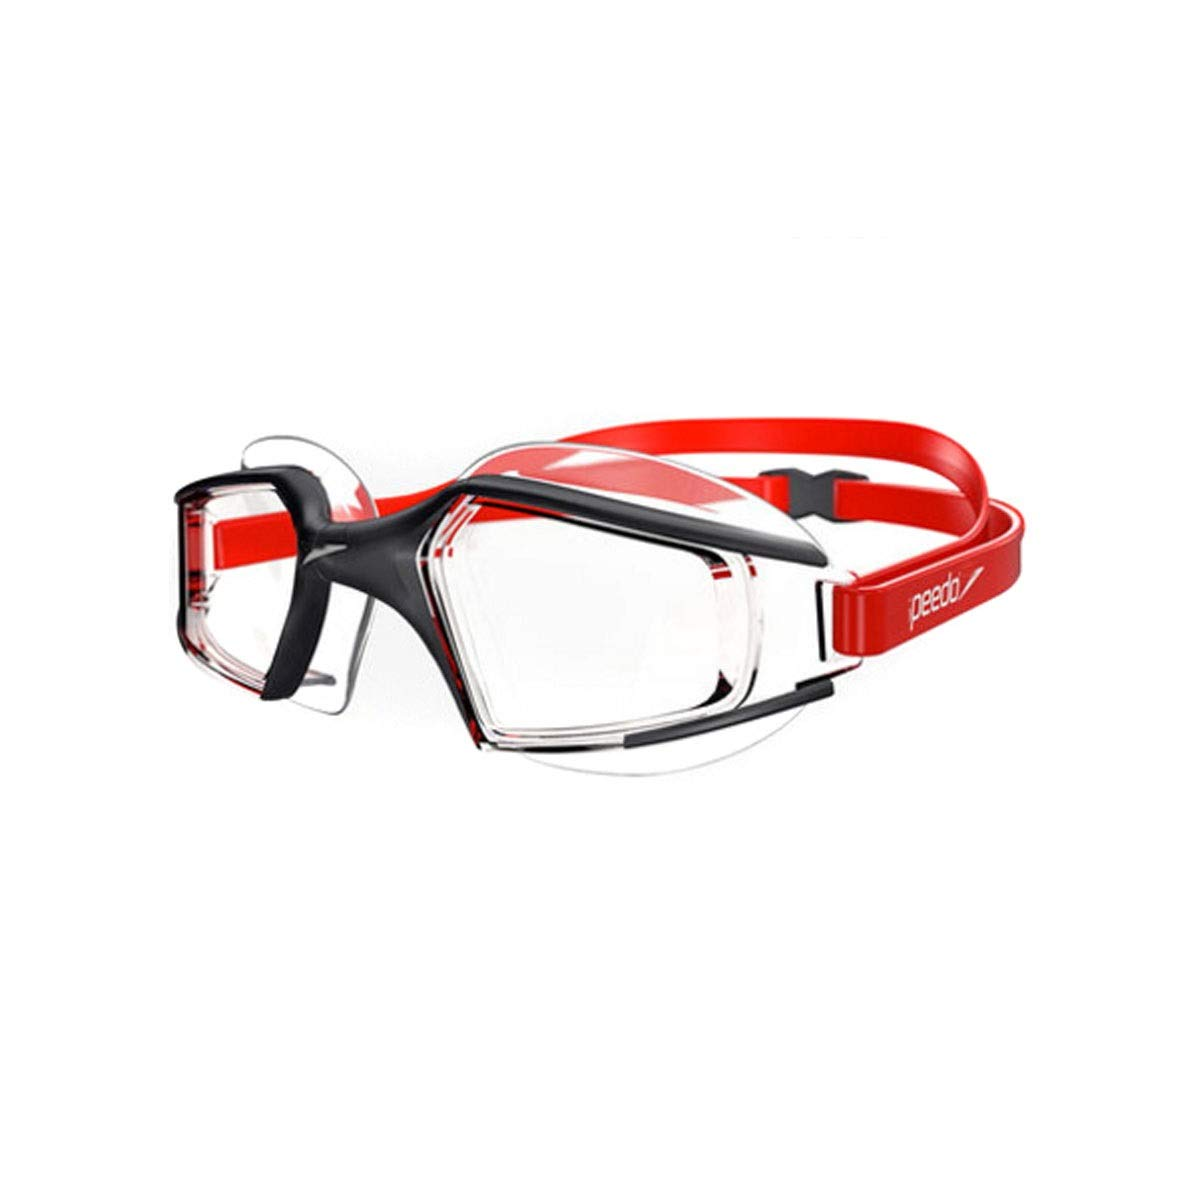 Red 6 Qiaoxianpo01 Goggles, Comfortable Large Frame Goggles, Coated HD Waterproof And Anti-fog Professional Design, Black, With Multiple colors